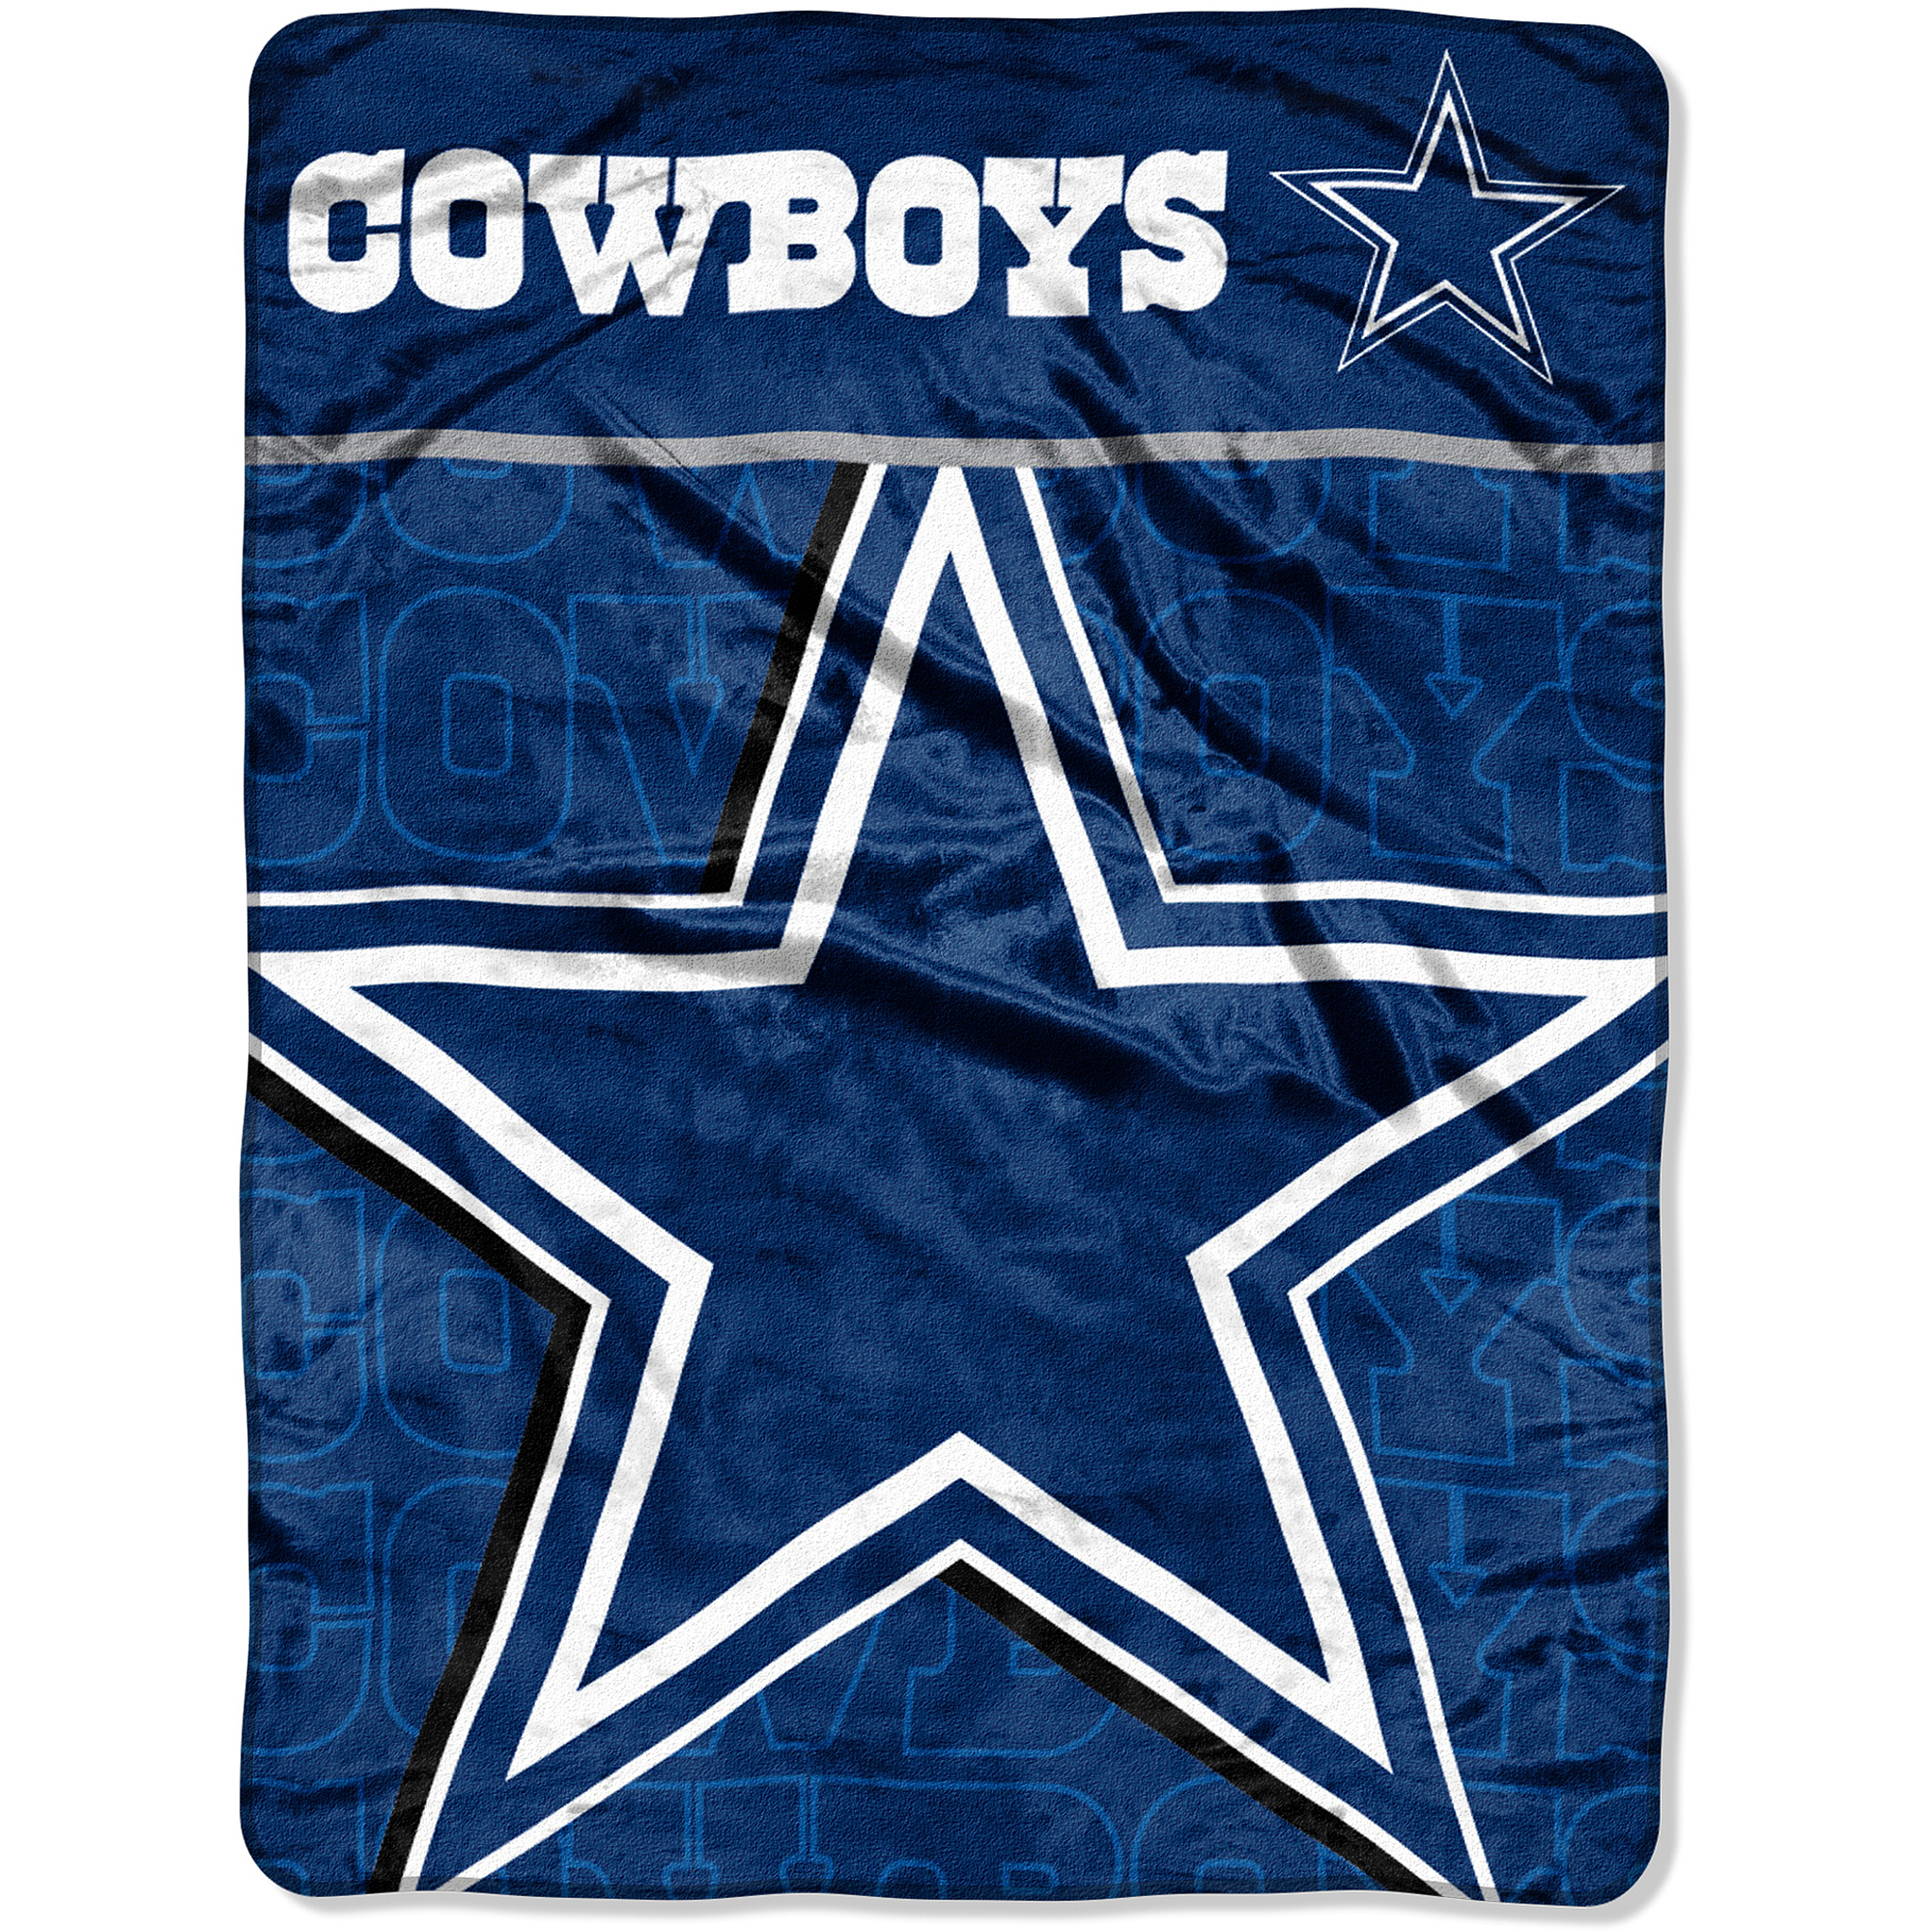 NFL Cowboys 46x60 Micro Raschel Throw